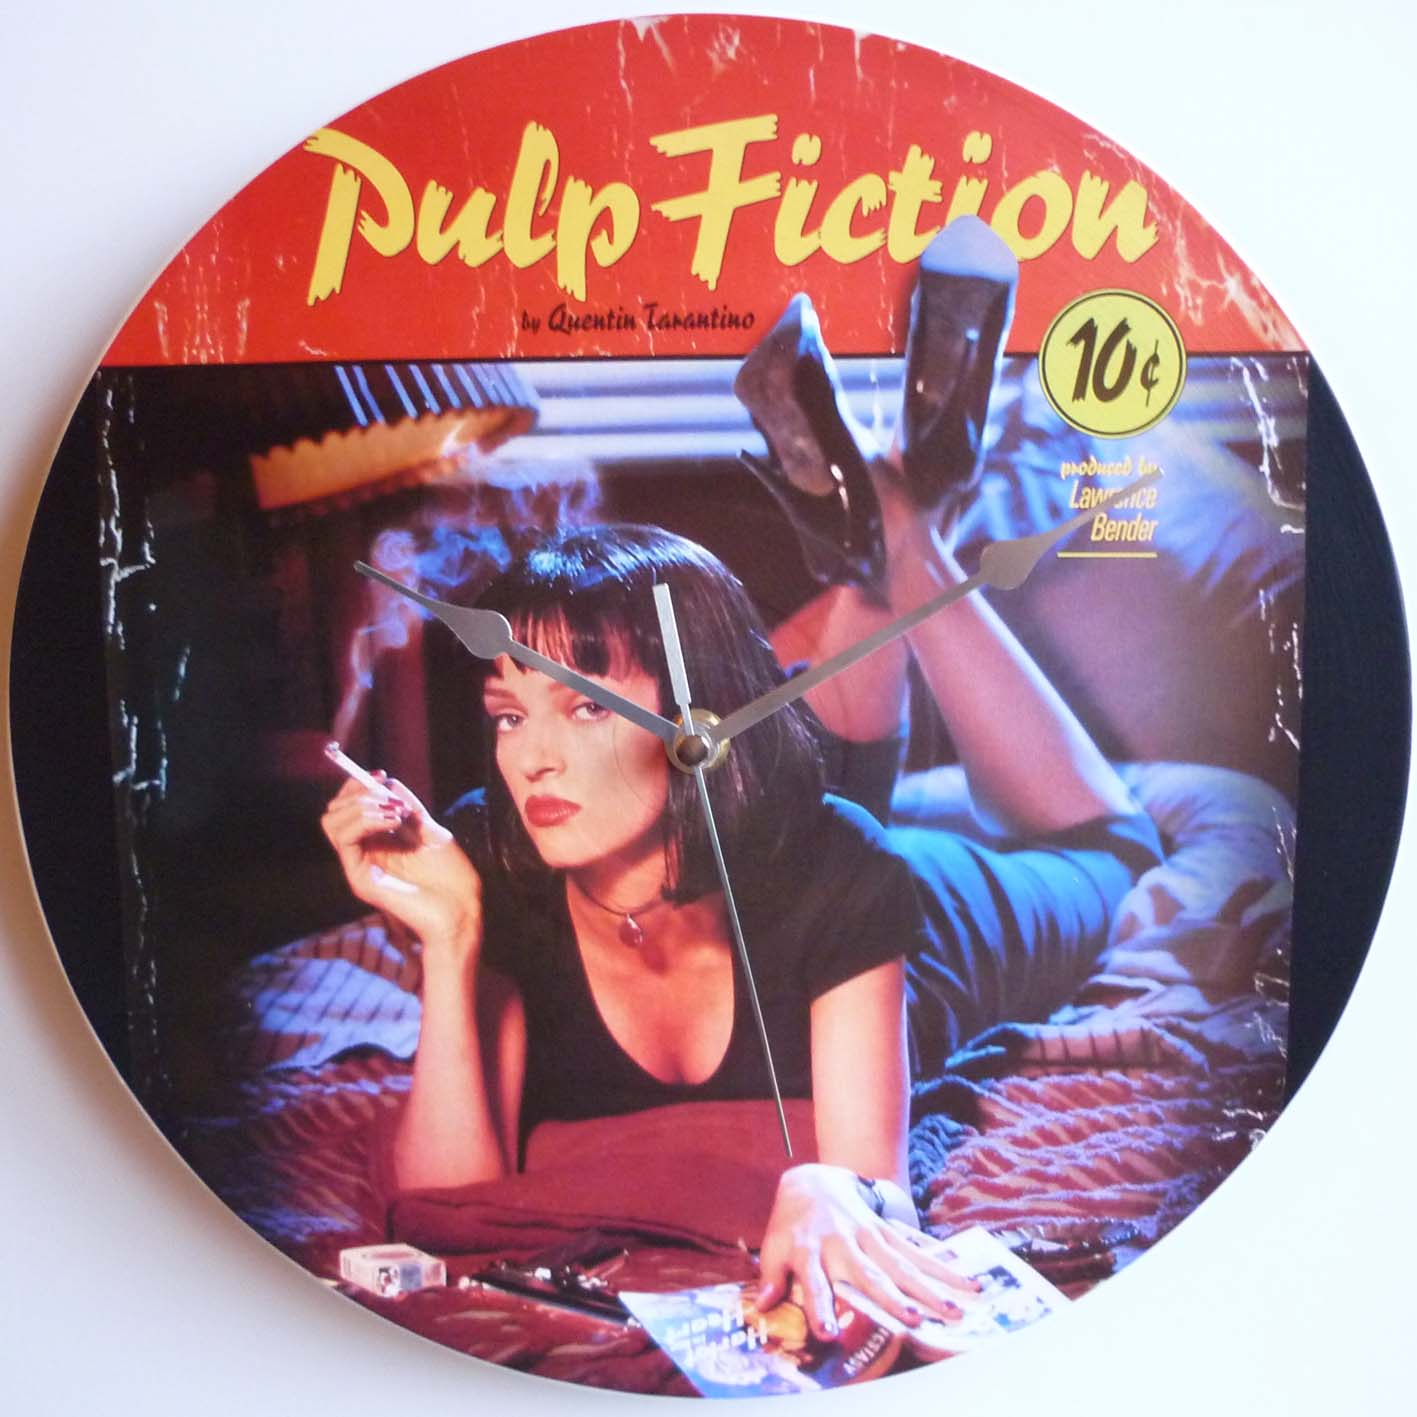 pulp fiction collection 1994 12 vinyl record wall clock the records ticking. Black Bedroom Furniture Sets. Home Design Ideas